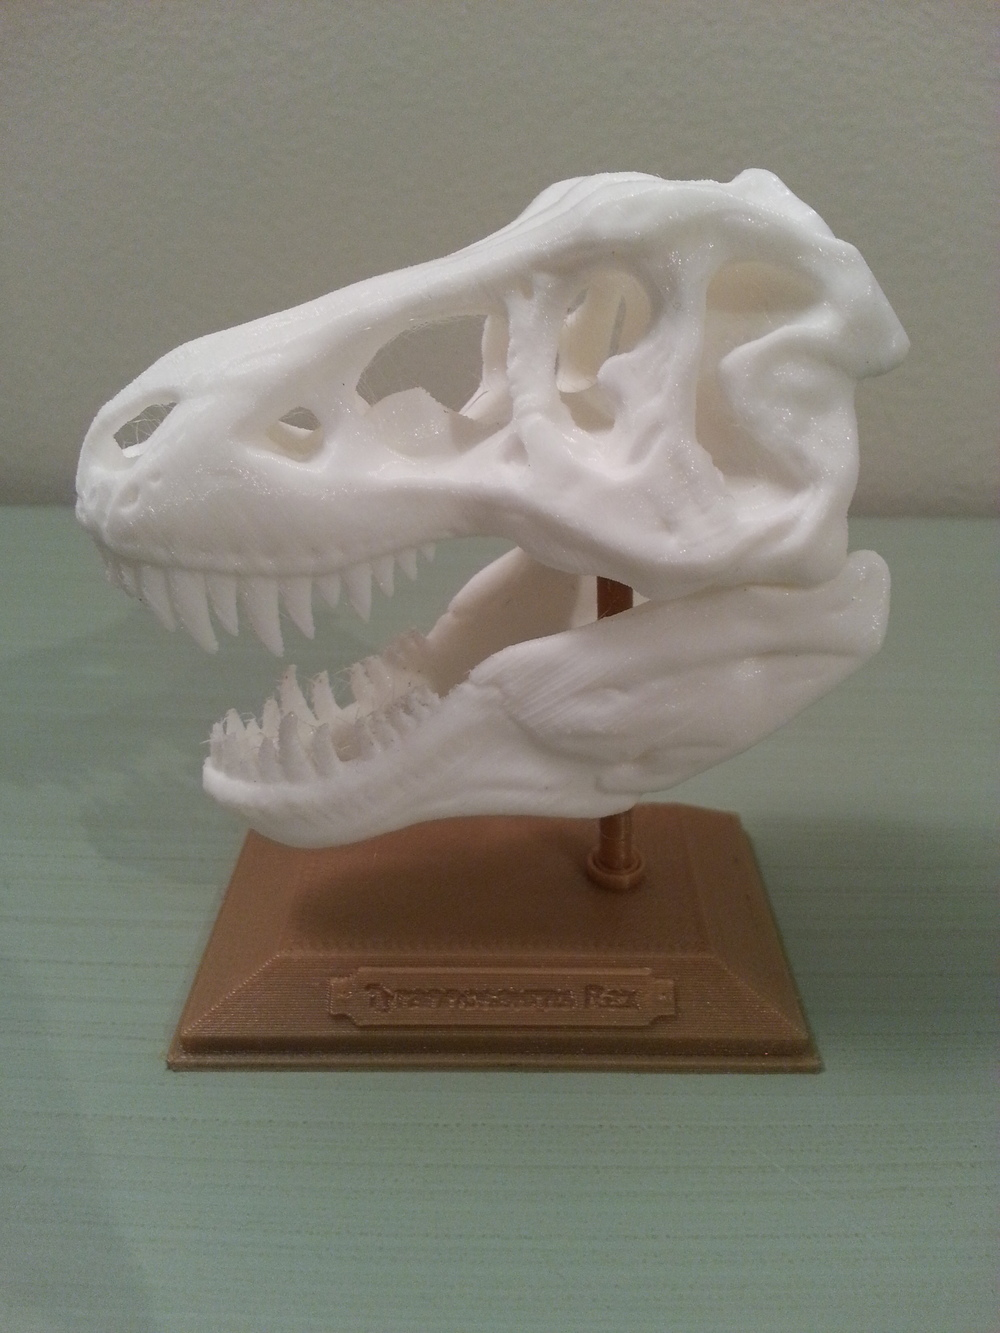 T-Rex Skull MakerGear M2 - 0.15mm layers - White & Gold PLA